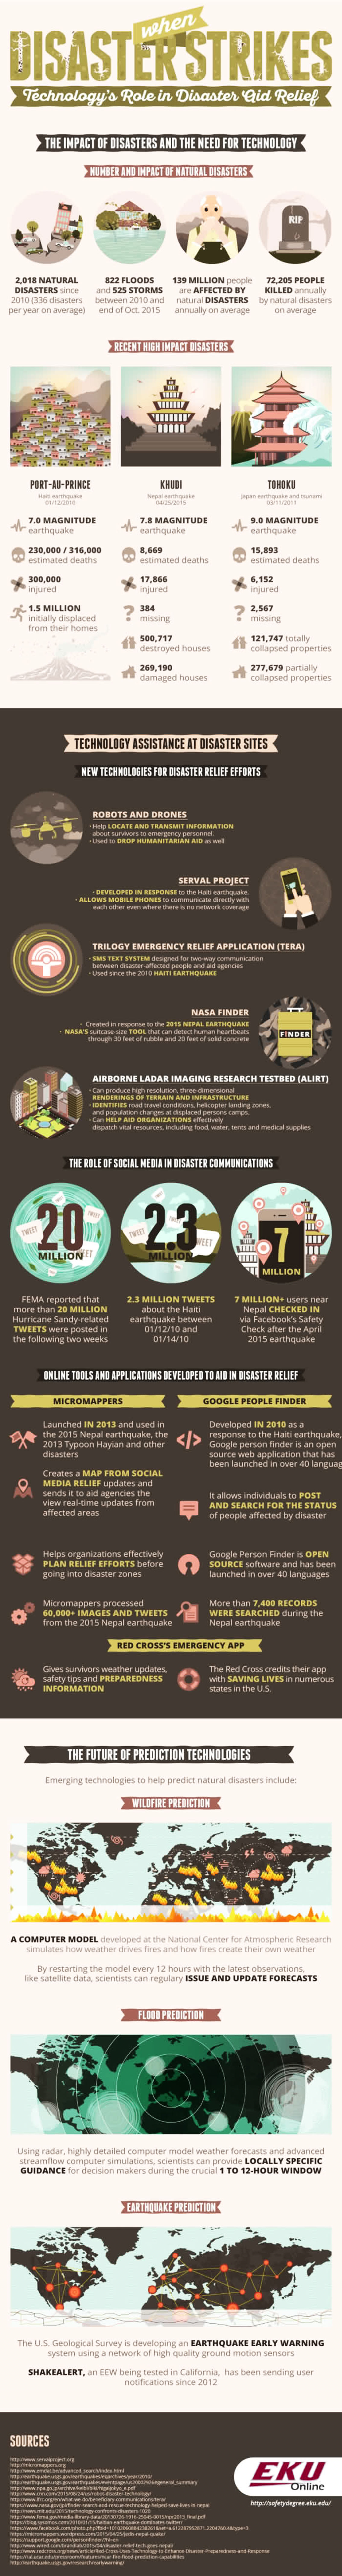 When Disaster Strikes Role of Technology in Aid Relief Infographic